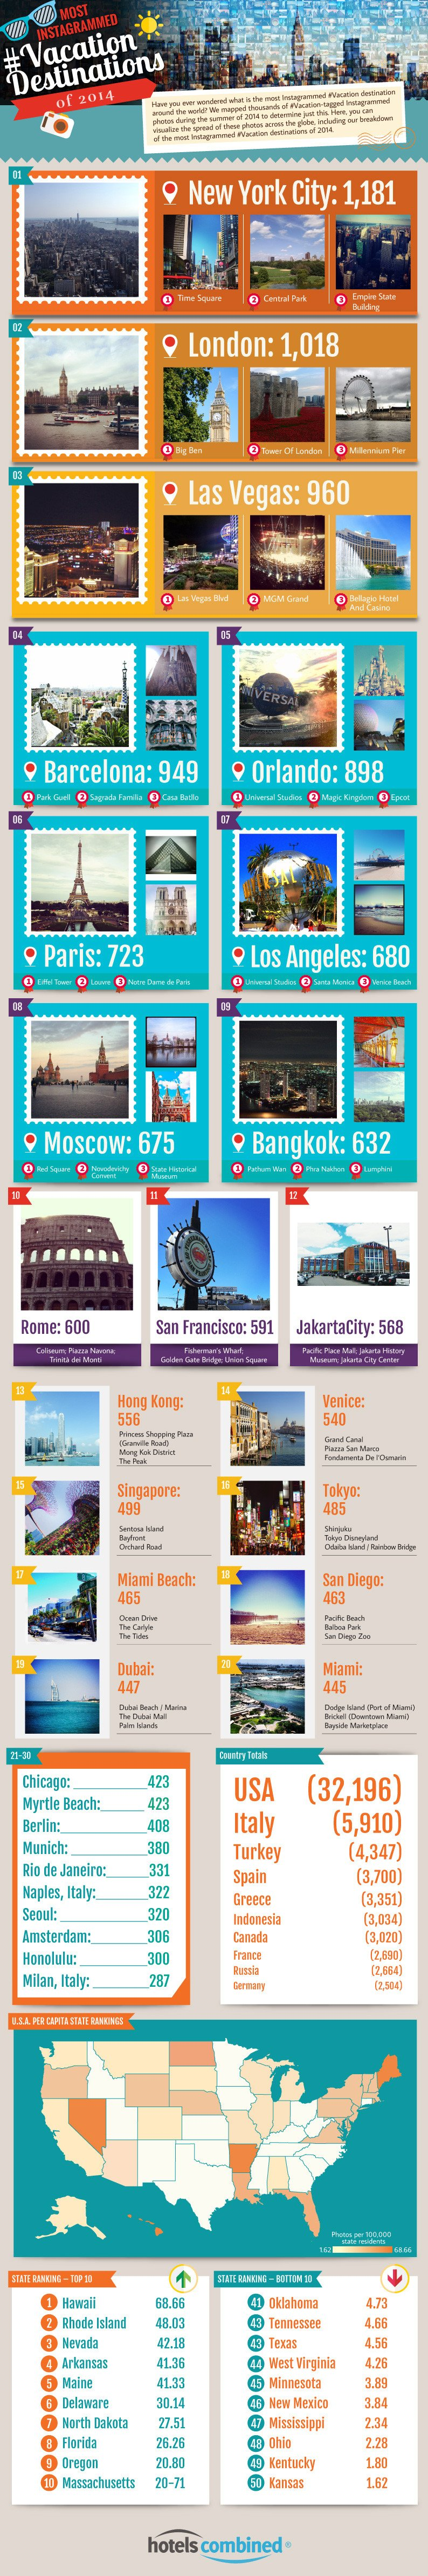 Top Vacation Destinations on Instagram